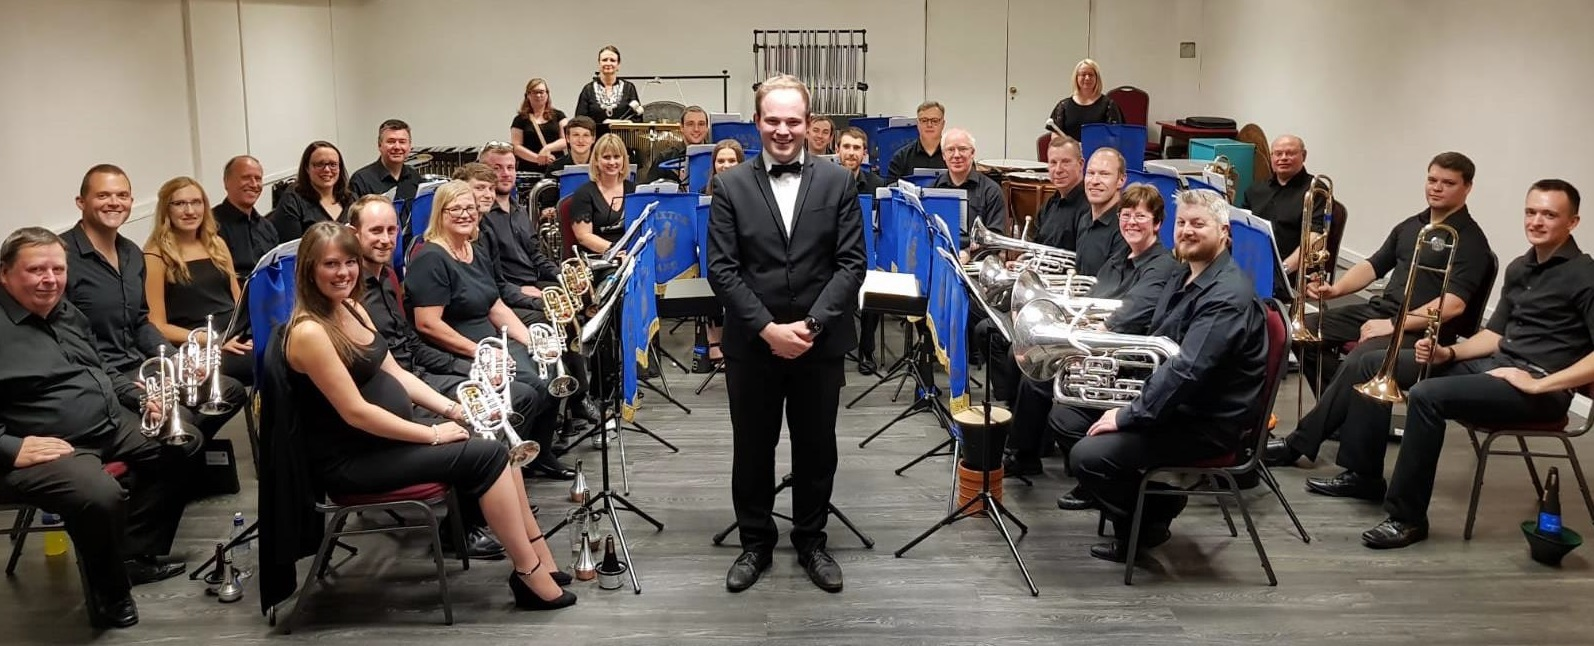 Flixton Band. Picture: Flixton Band